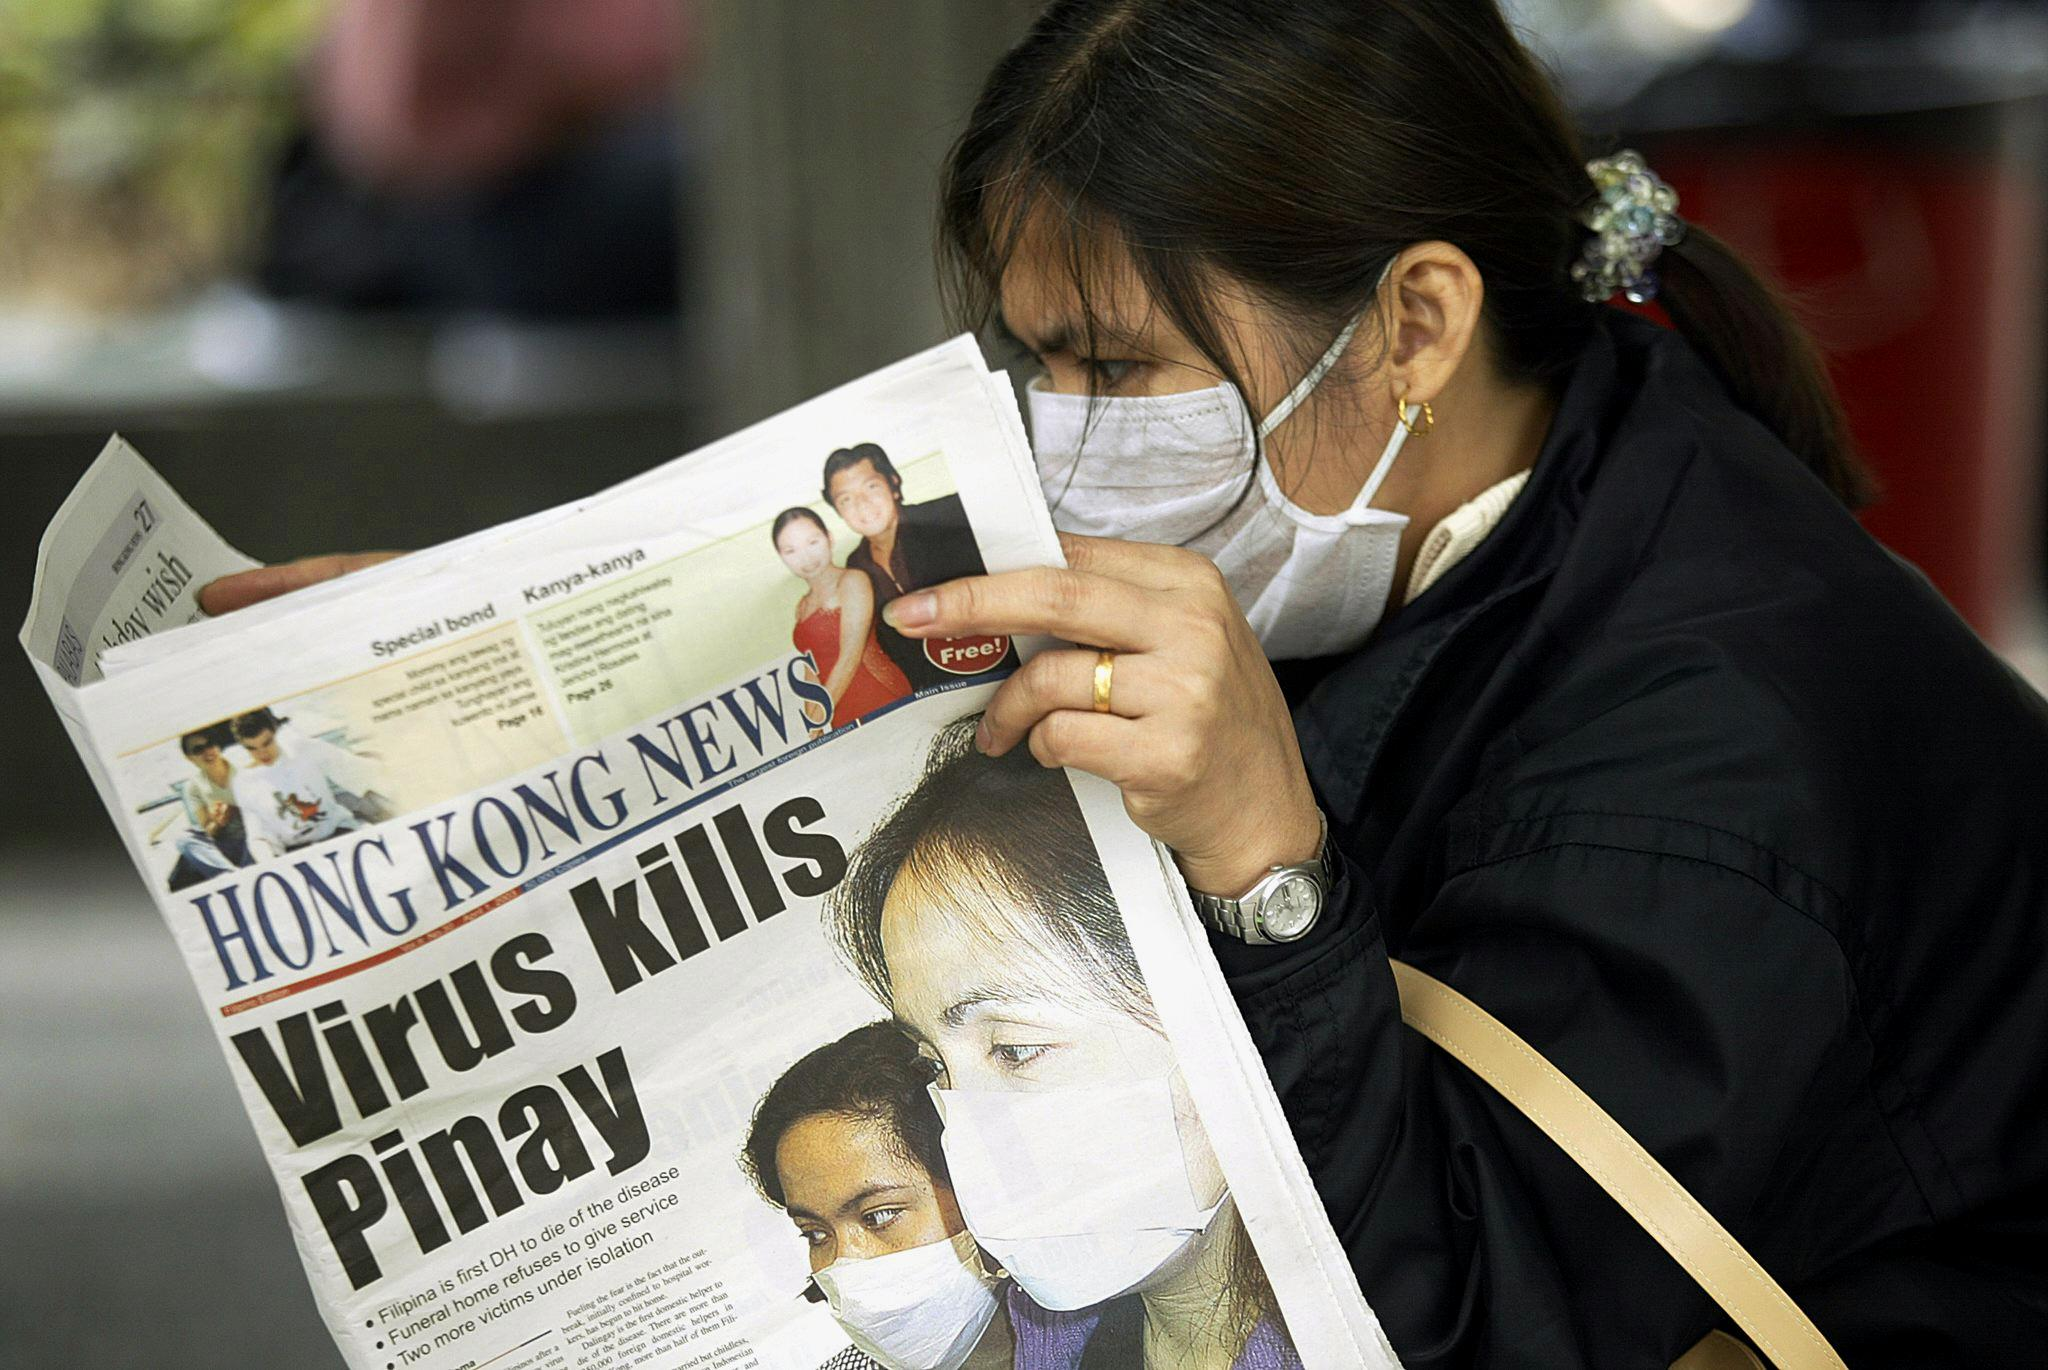 Bird flu. SARS. China coronavirus. Is history repeating itself? - STAT